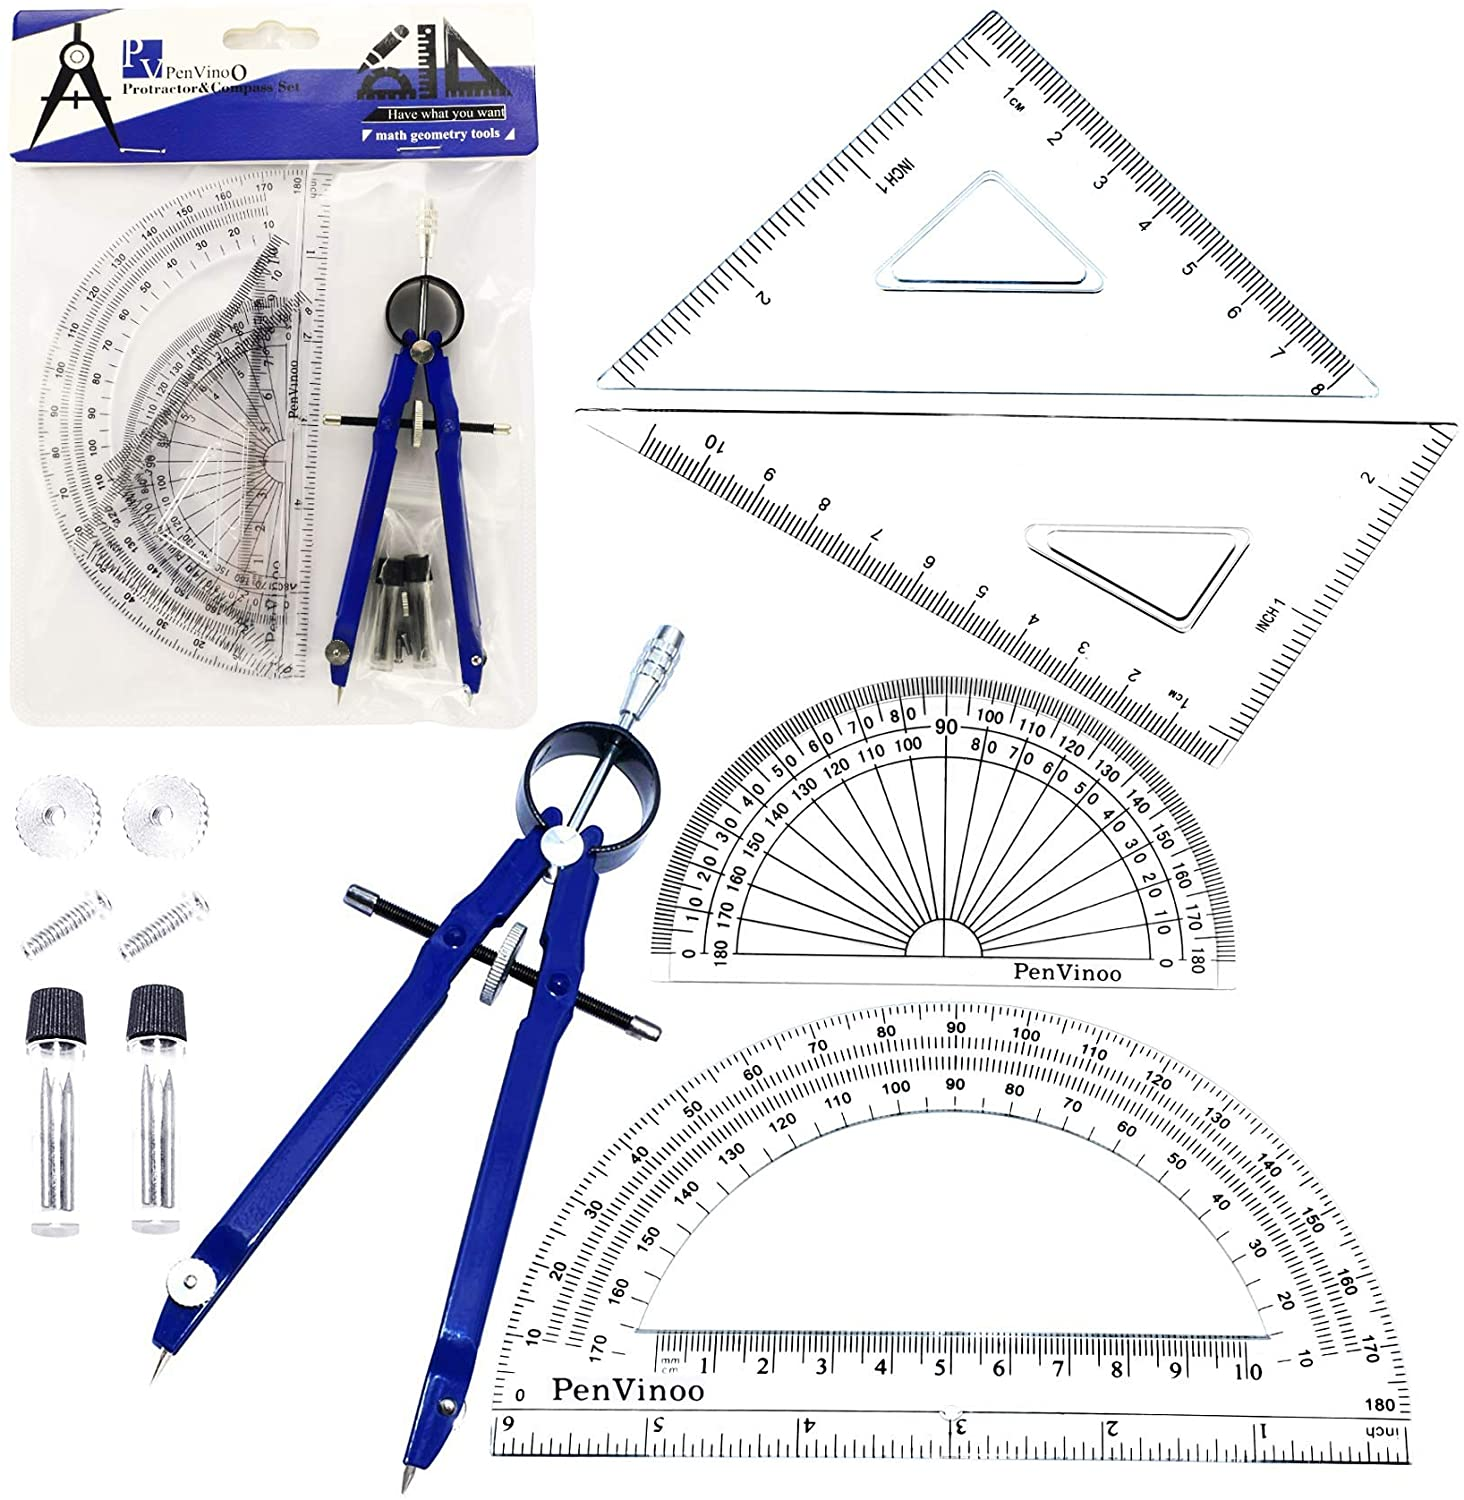 5 Piece Geometry School Set,with Quality Compass, Set Squares, Protractor,Drawing Compass Math Geometry Tools(5 pcs-Compass-Blue)